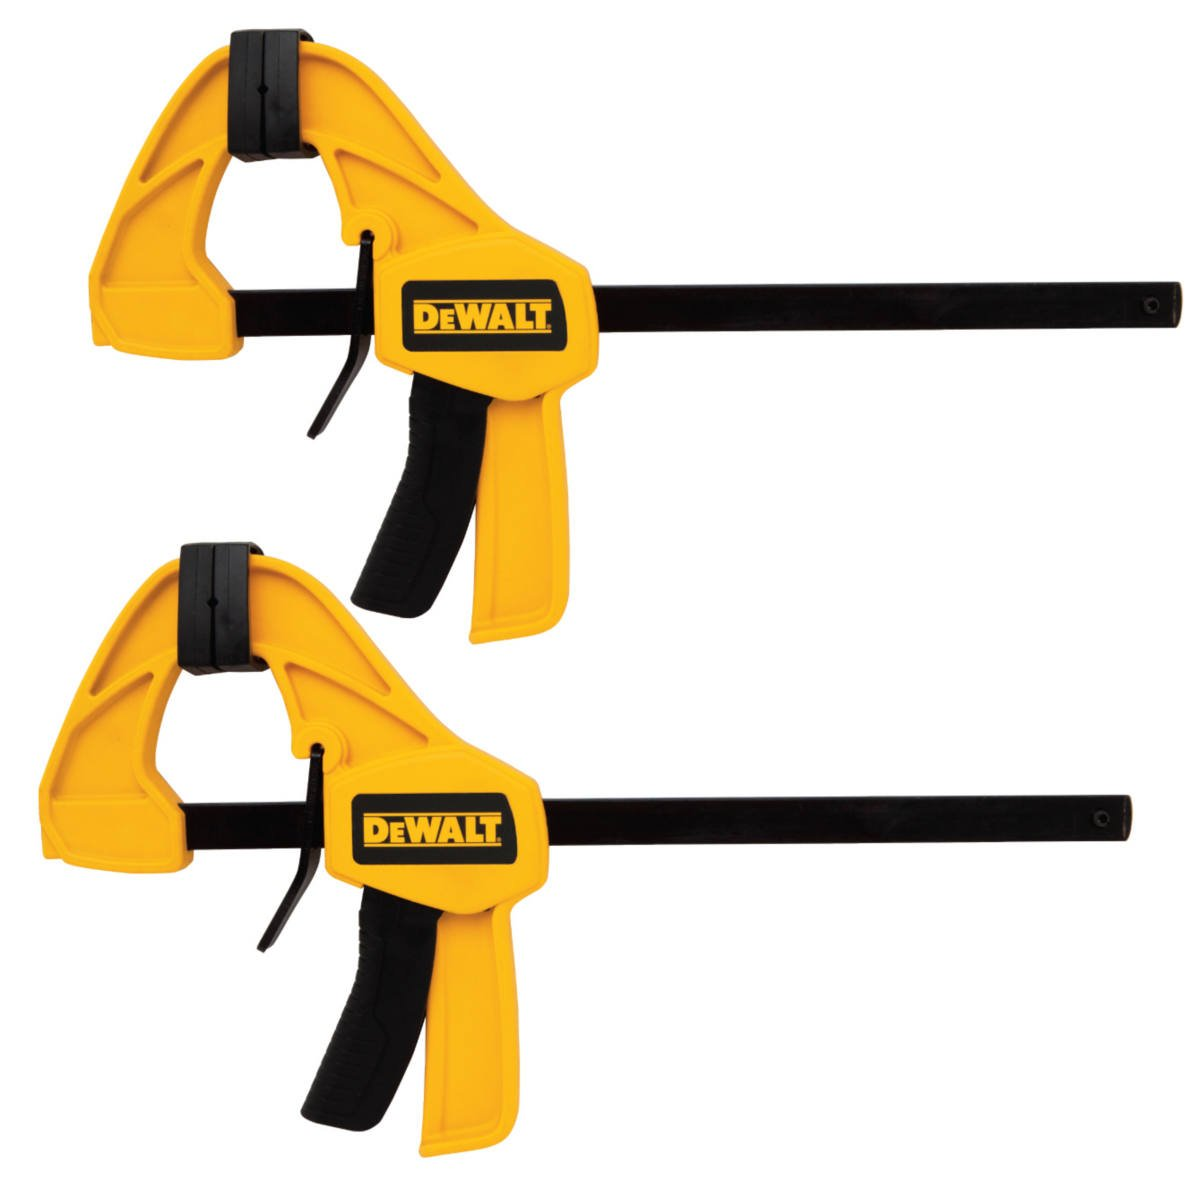 DEWALT DWHT83158 Medium Trigger Clamp with 12 inch Bar 2pk